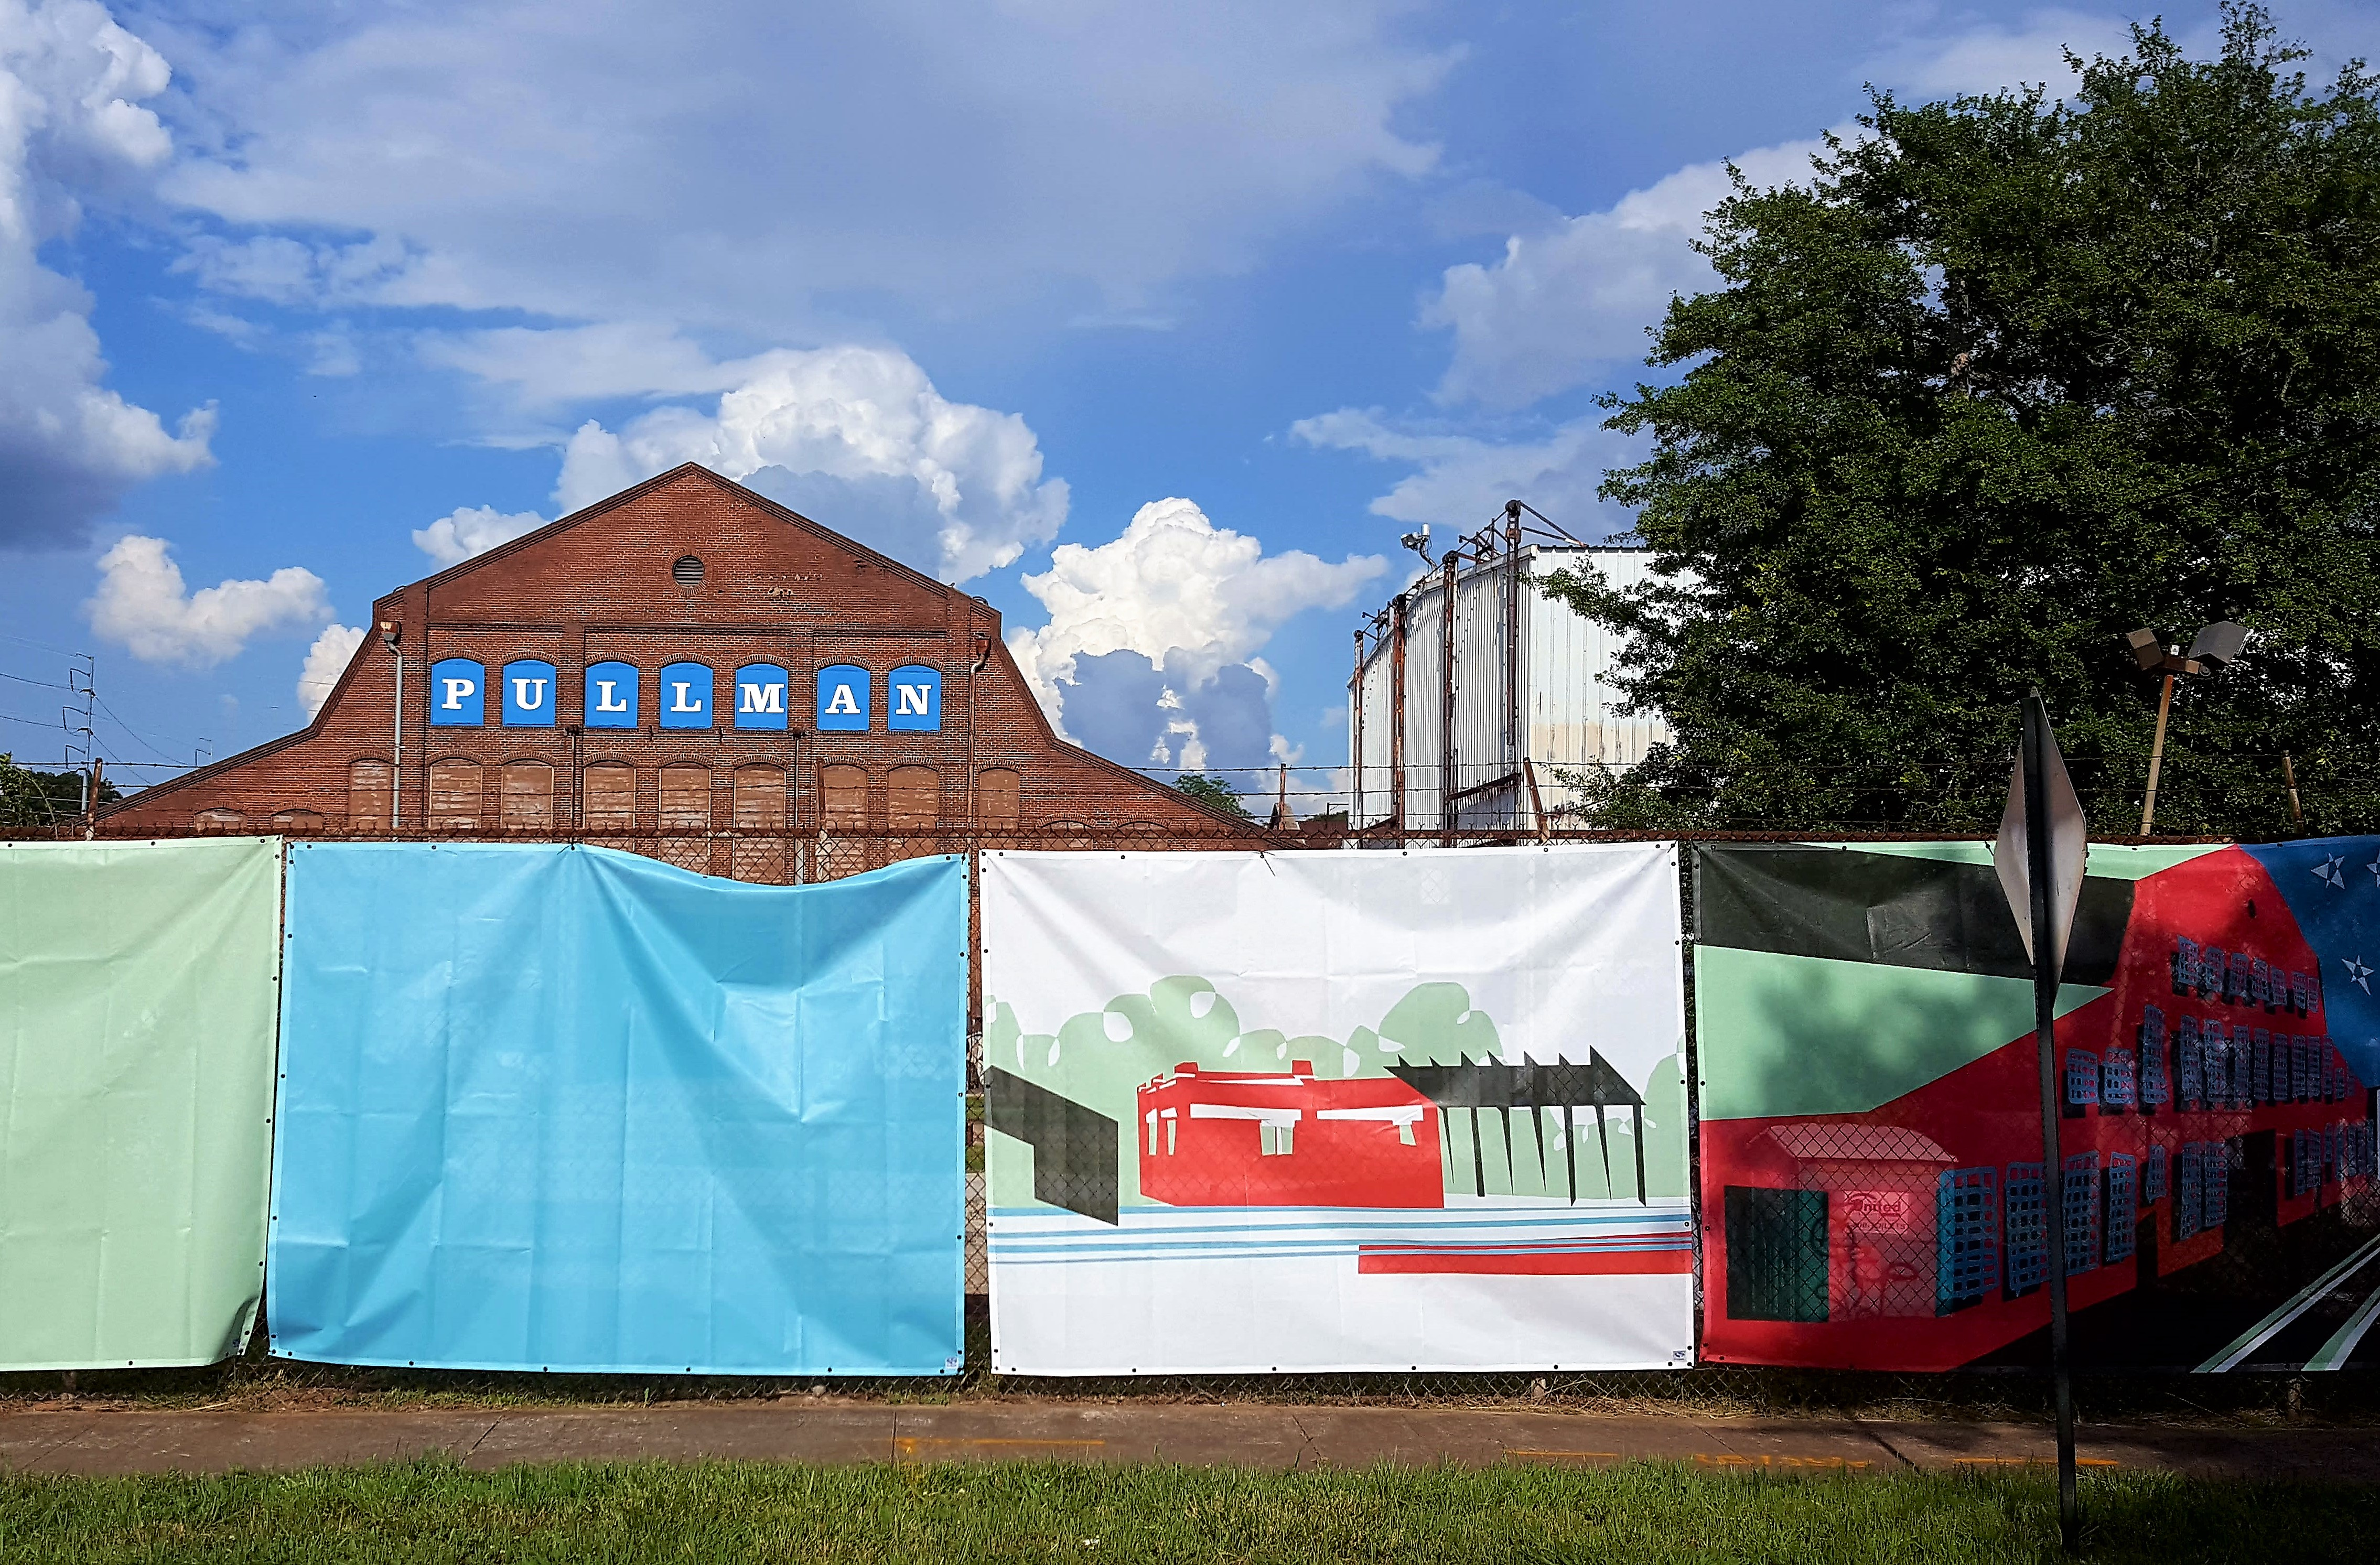 """A colorful construction fence stands before an aging brick building adorned with the word """"Pullman."""""""